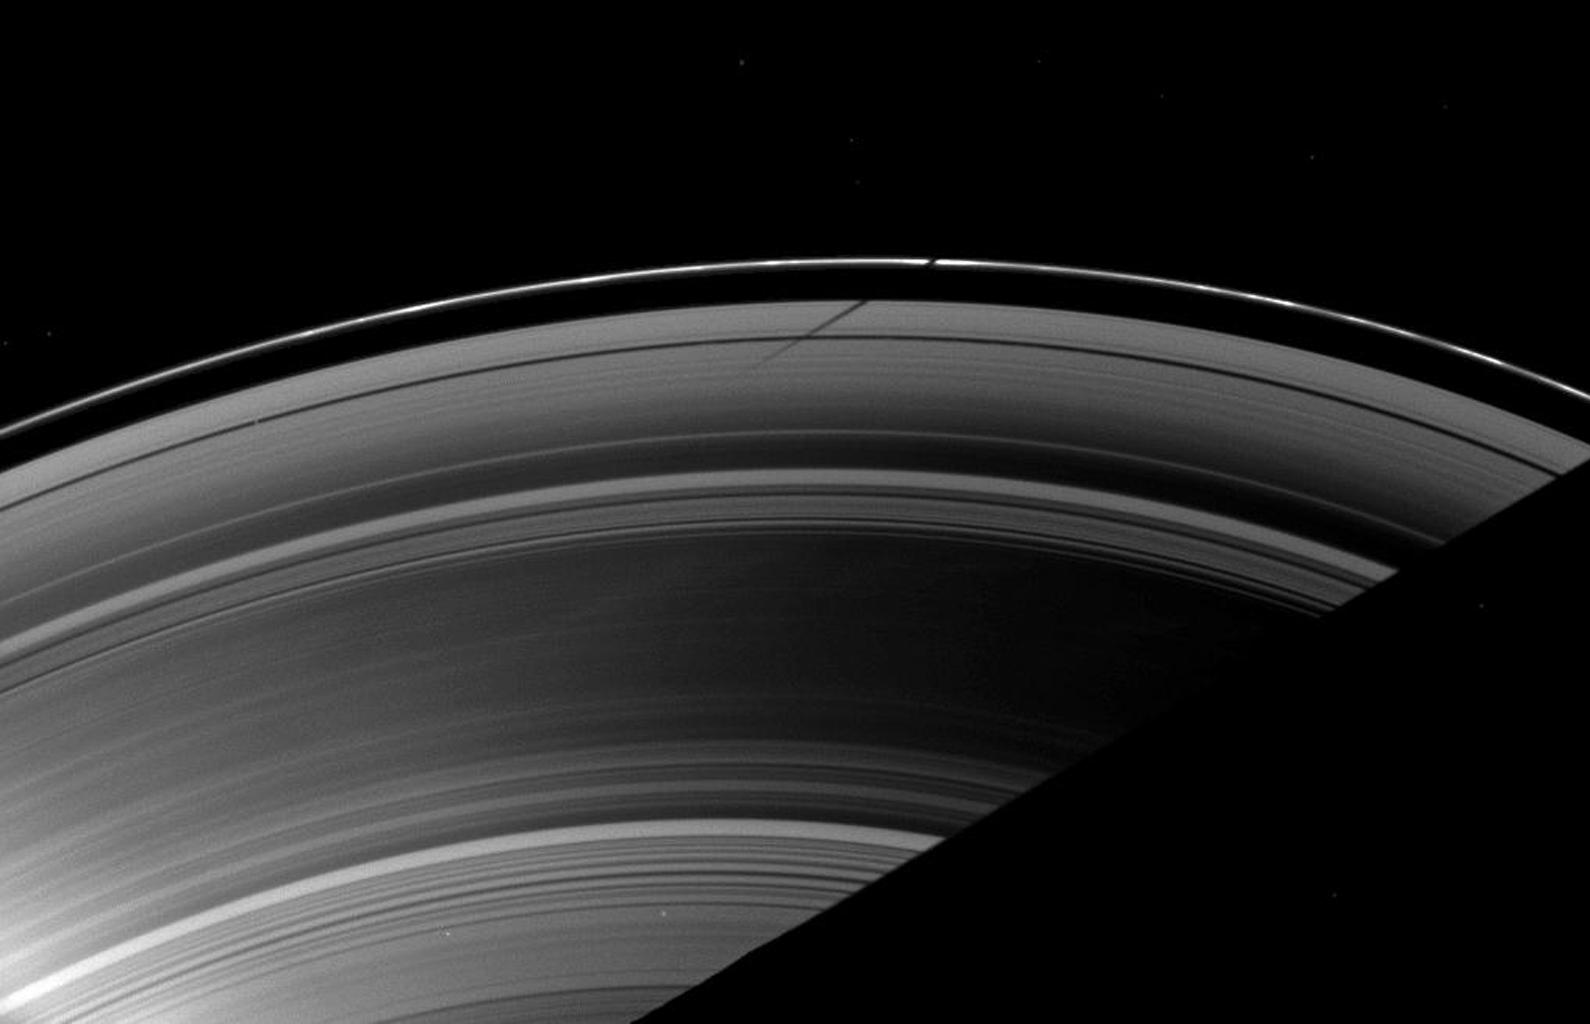 The shadow of the moon Mimas strikes the F ring at a different angle than the angle at which it is cast on the A ring, illustrating differences in the vertical heights of the rings in this image as seen by NASA's Cassini spacecraft.